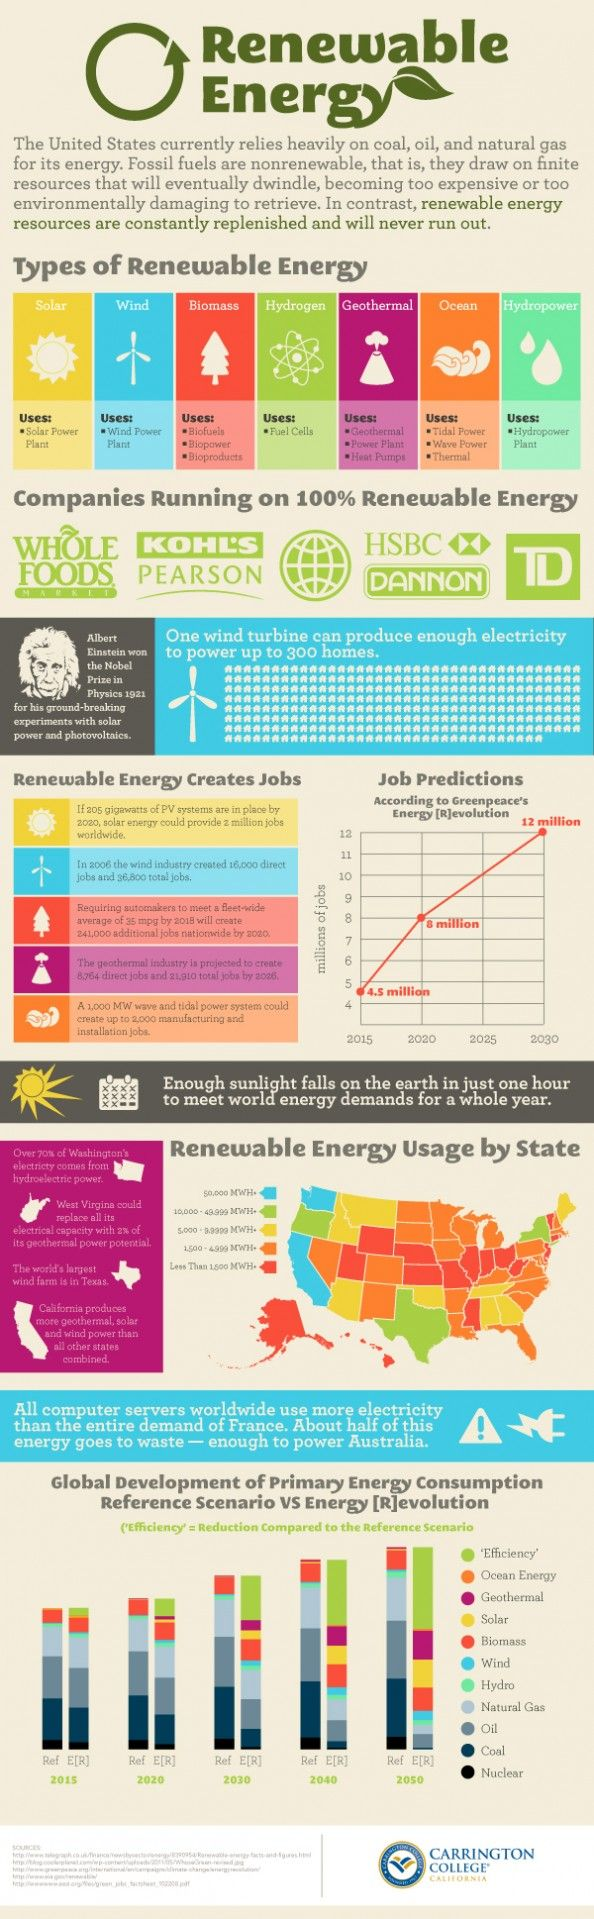 [A Newbies Guide To Renewable Energy] http://visual.ly/newbies-guide-renewable-energy